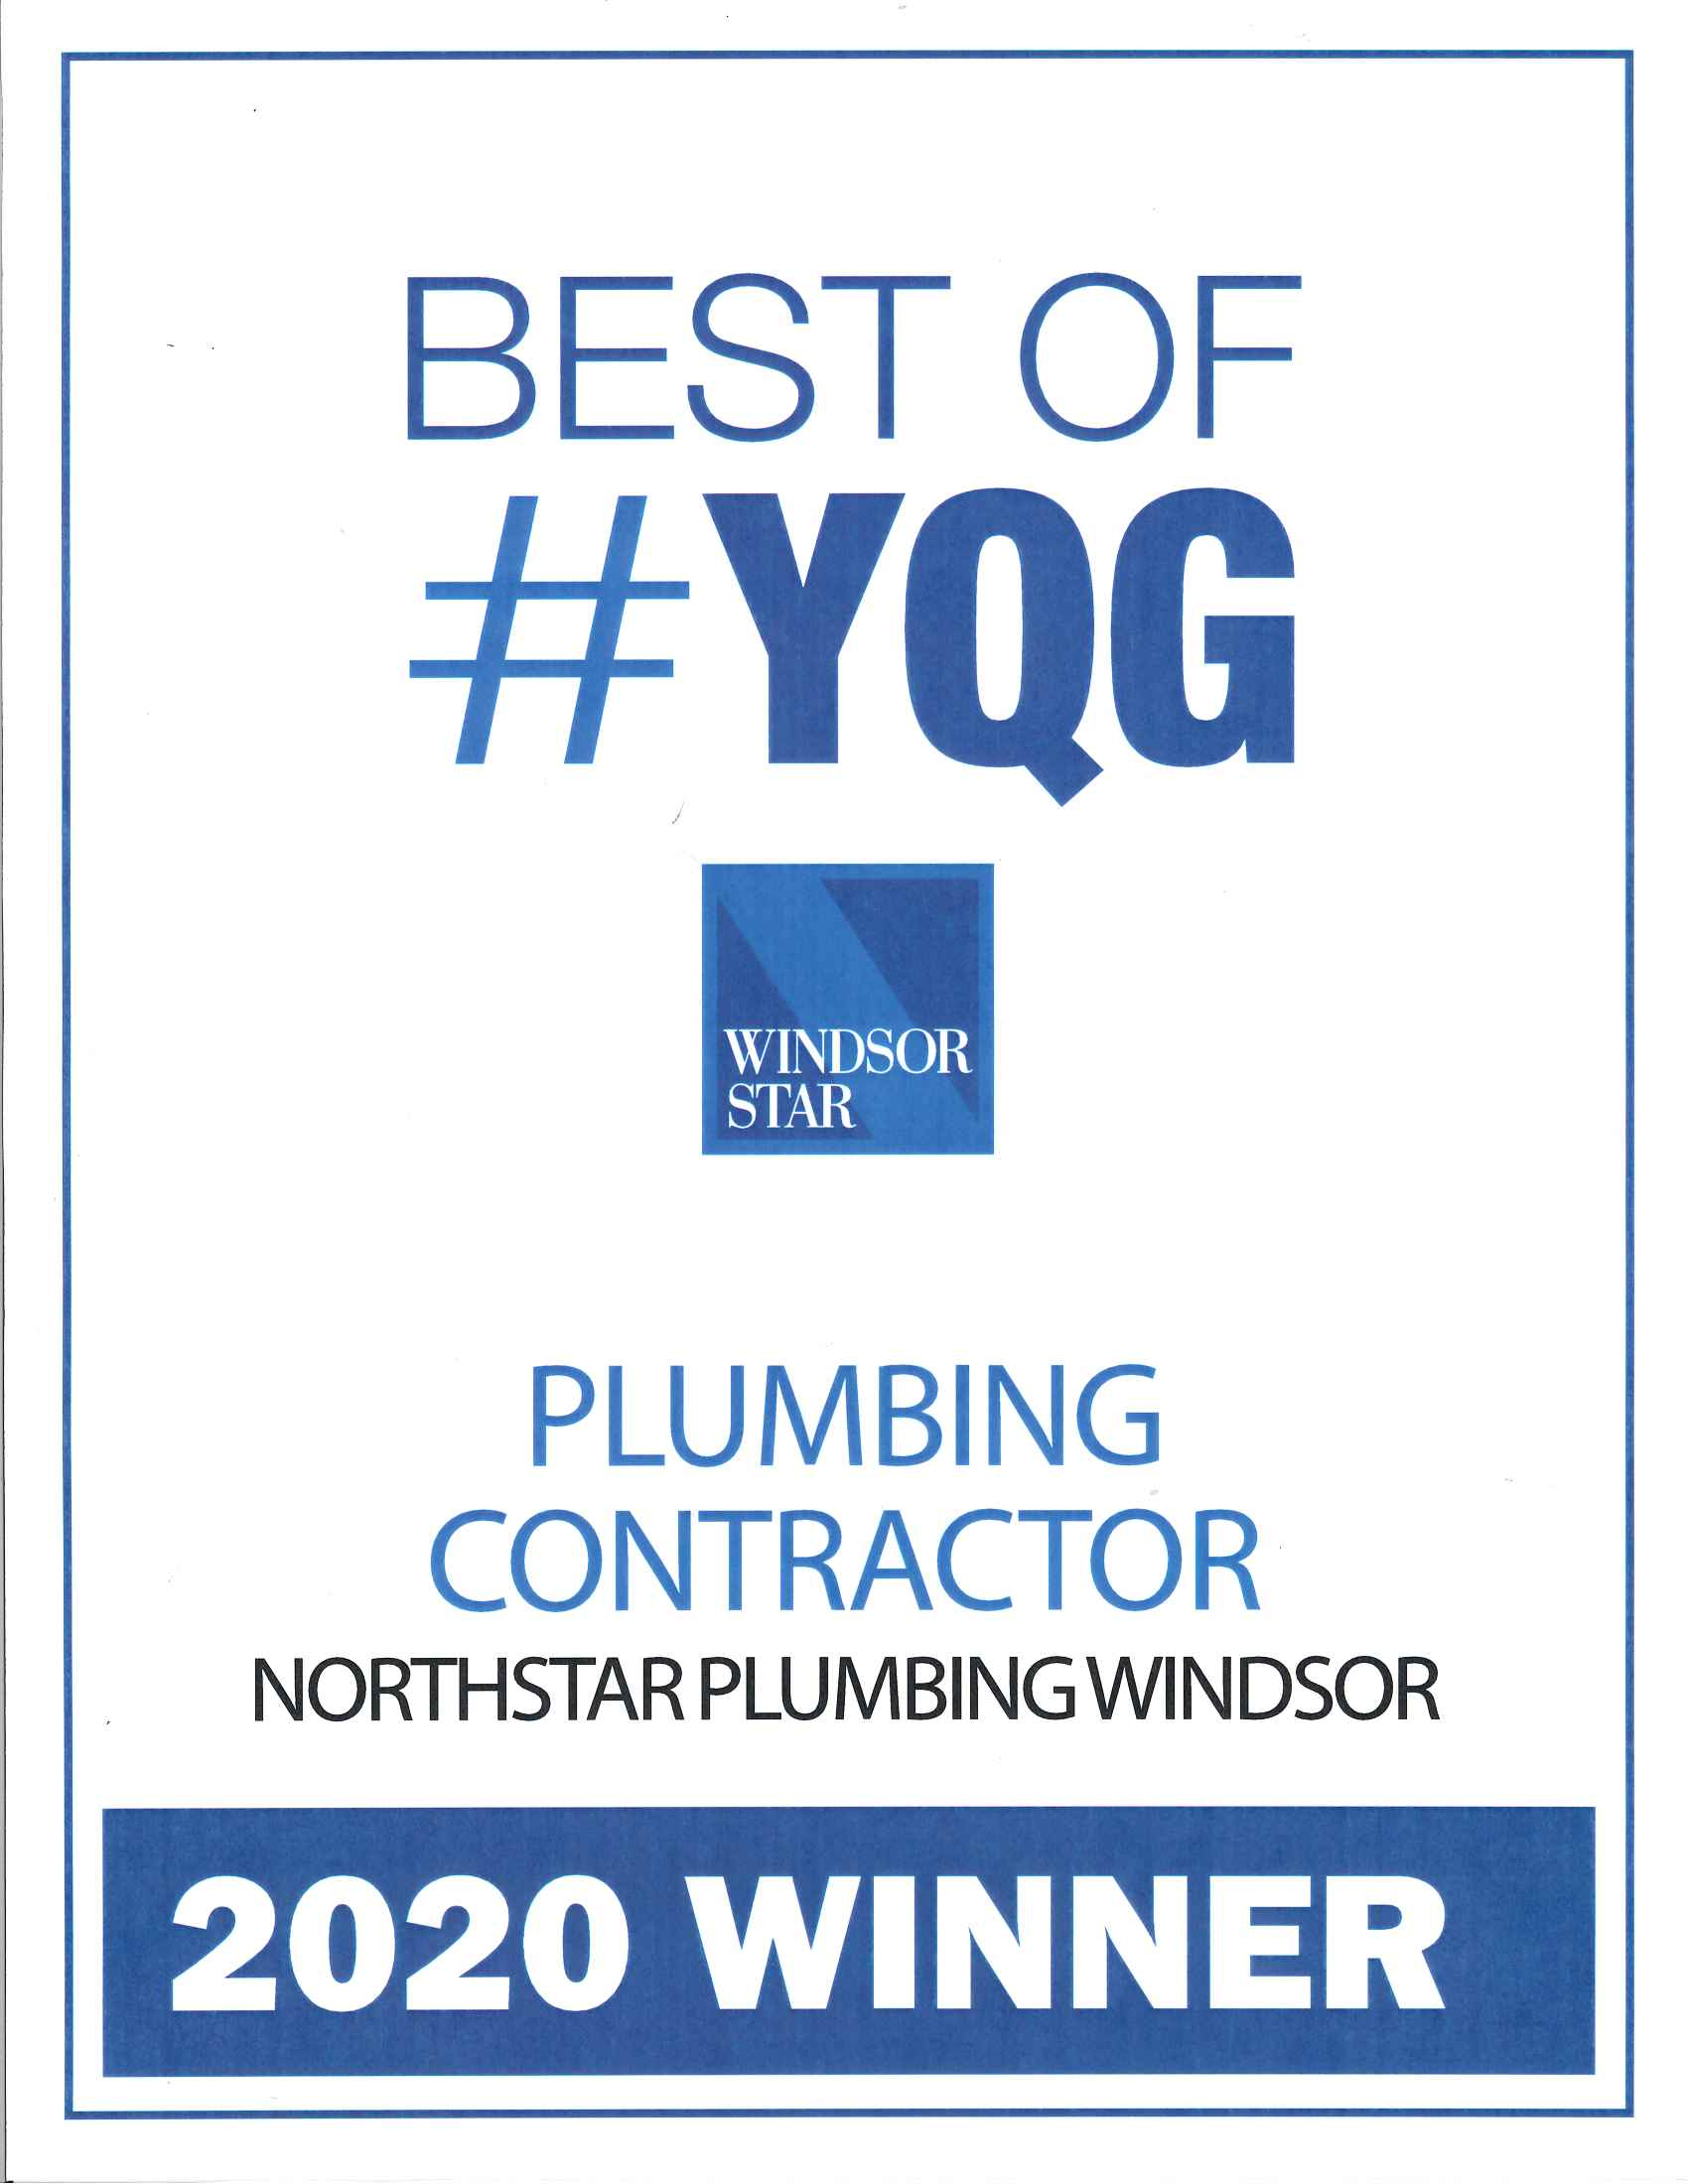 Northstar Plumbing won the 2020 award for Plumbing Contractor